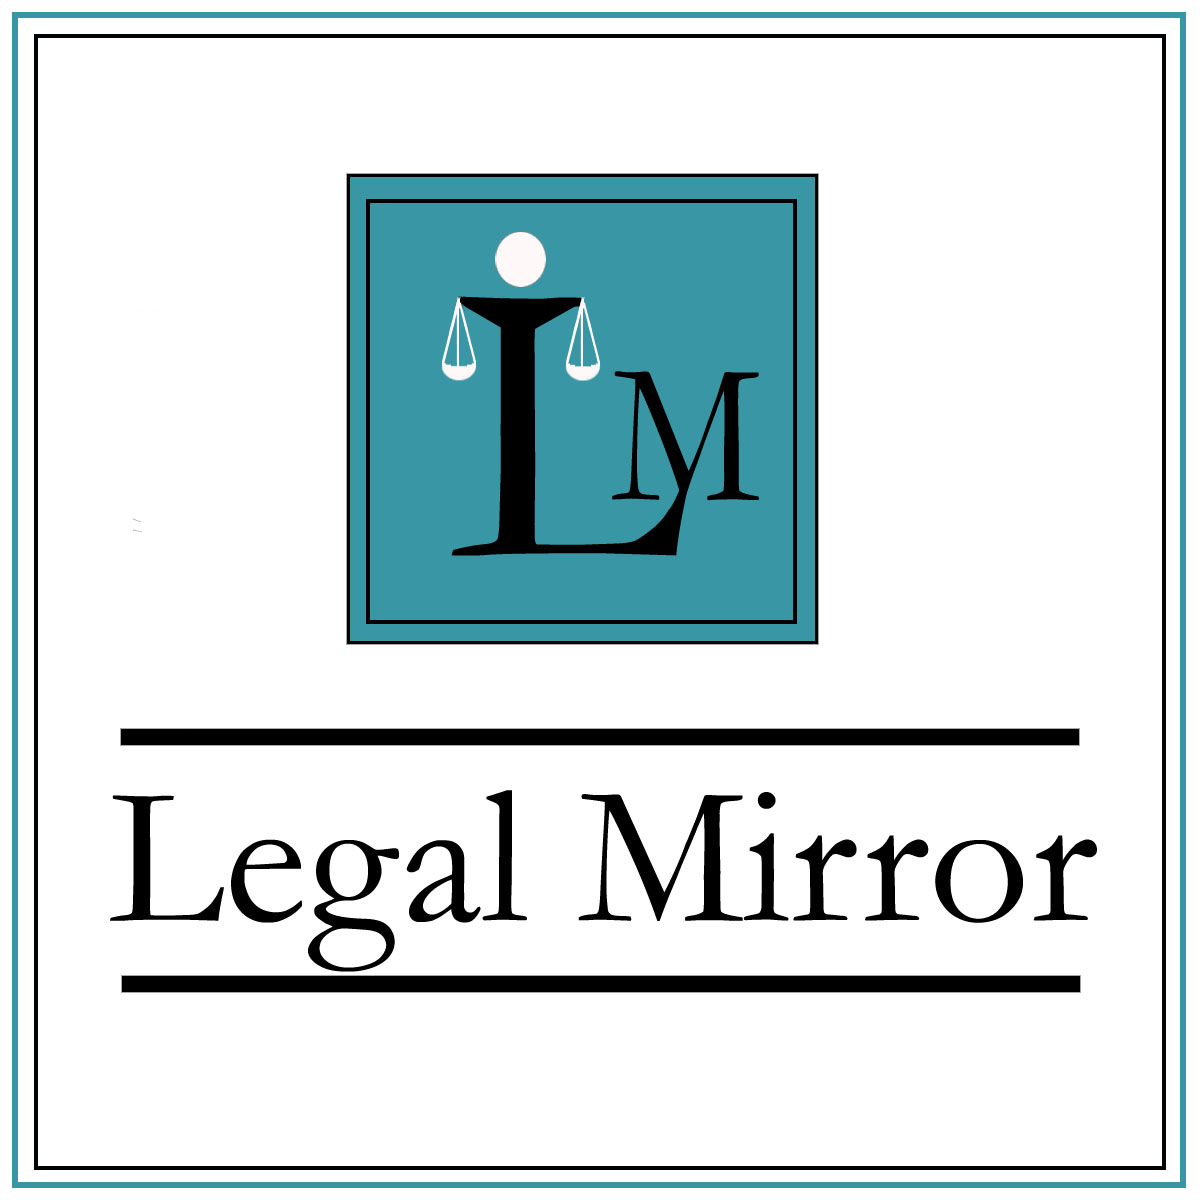 Call for Papers: Legal Mirror [Pay Rs. 1500 for Publication]: Submit by June 30